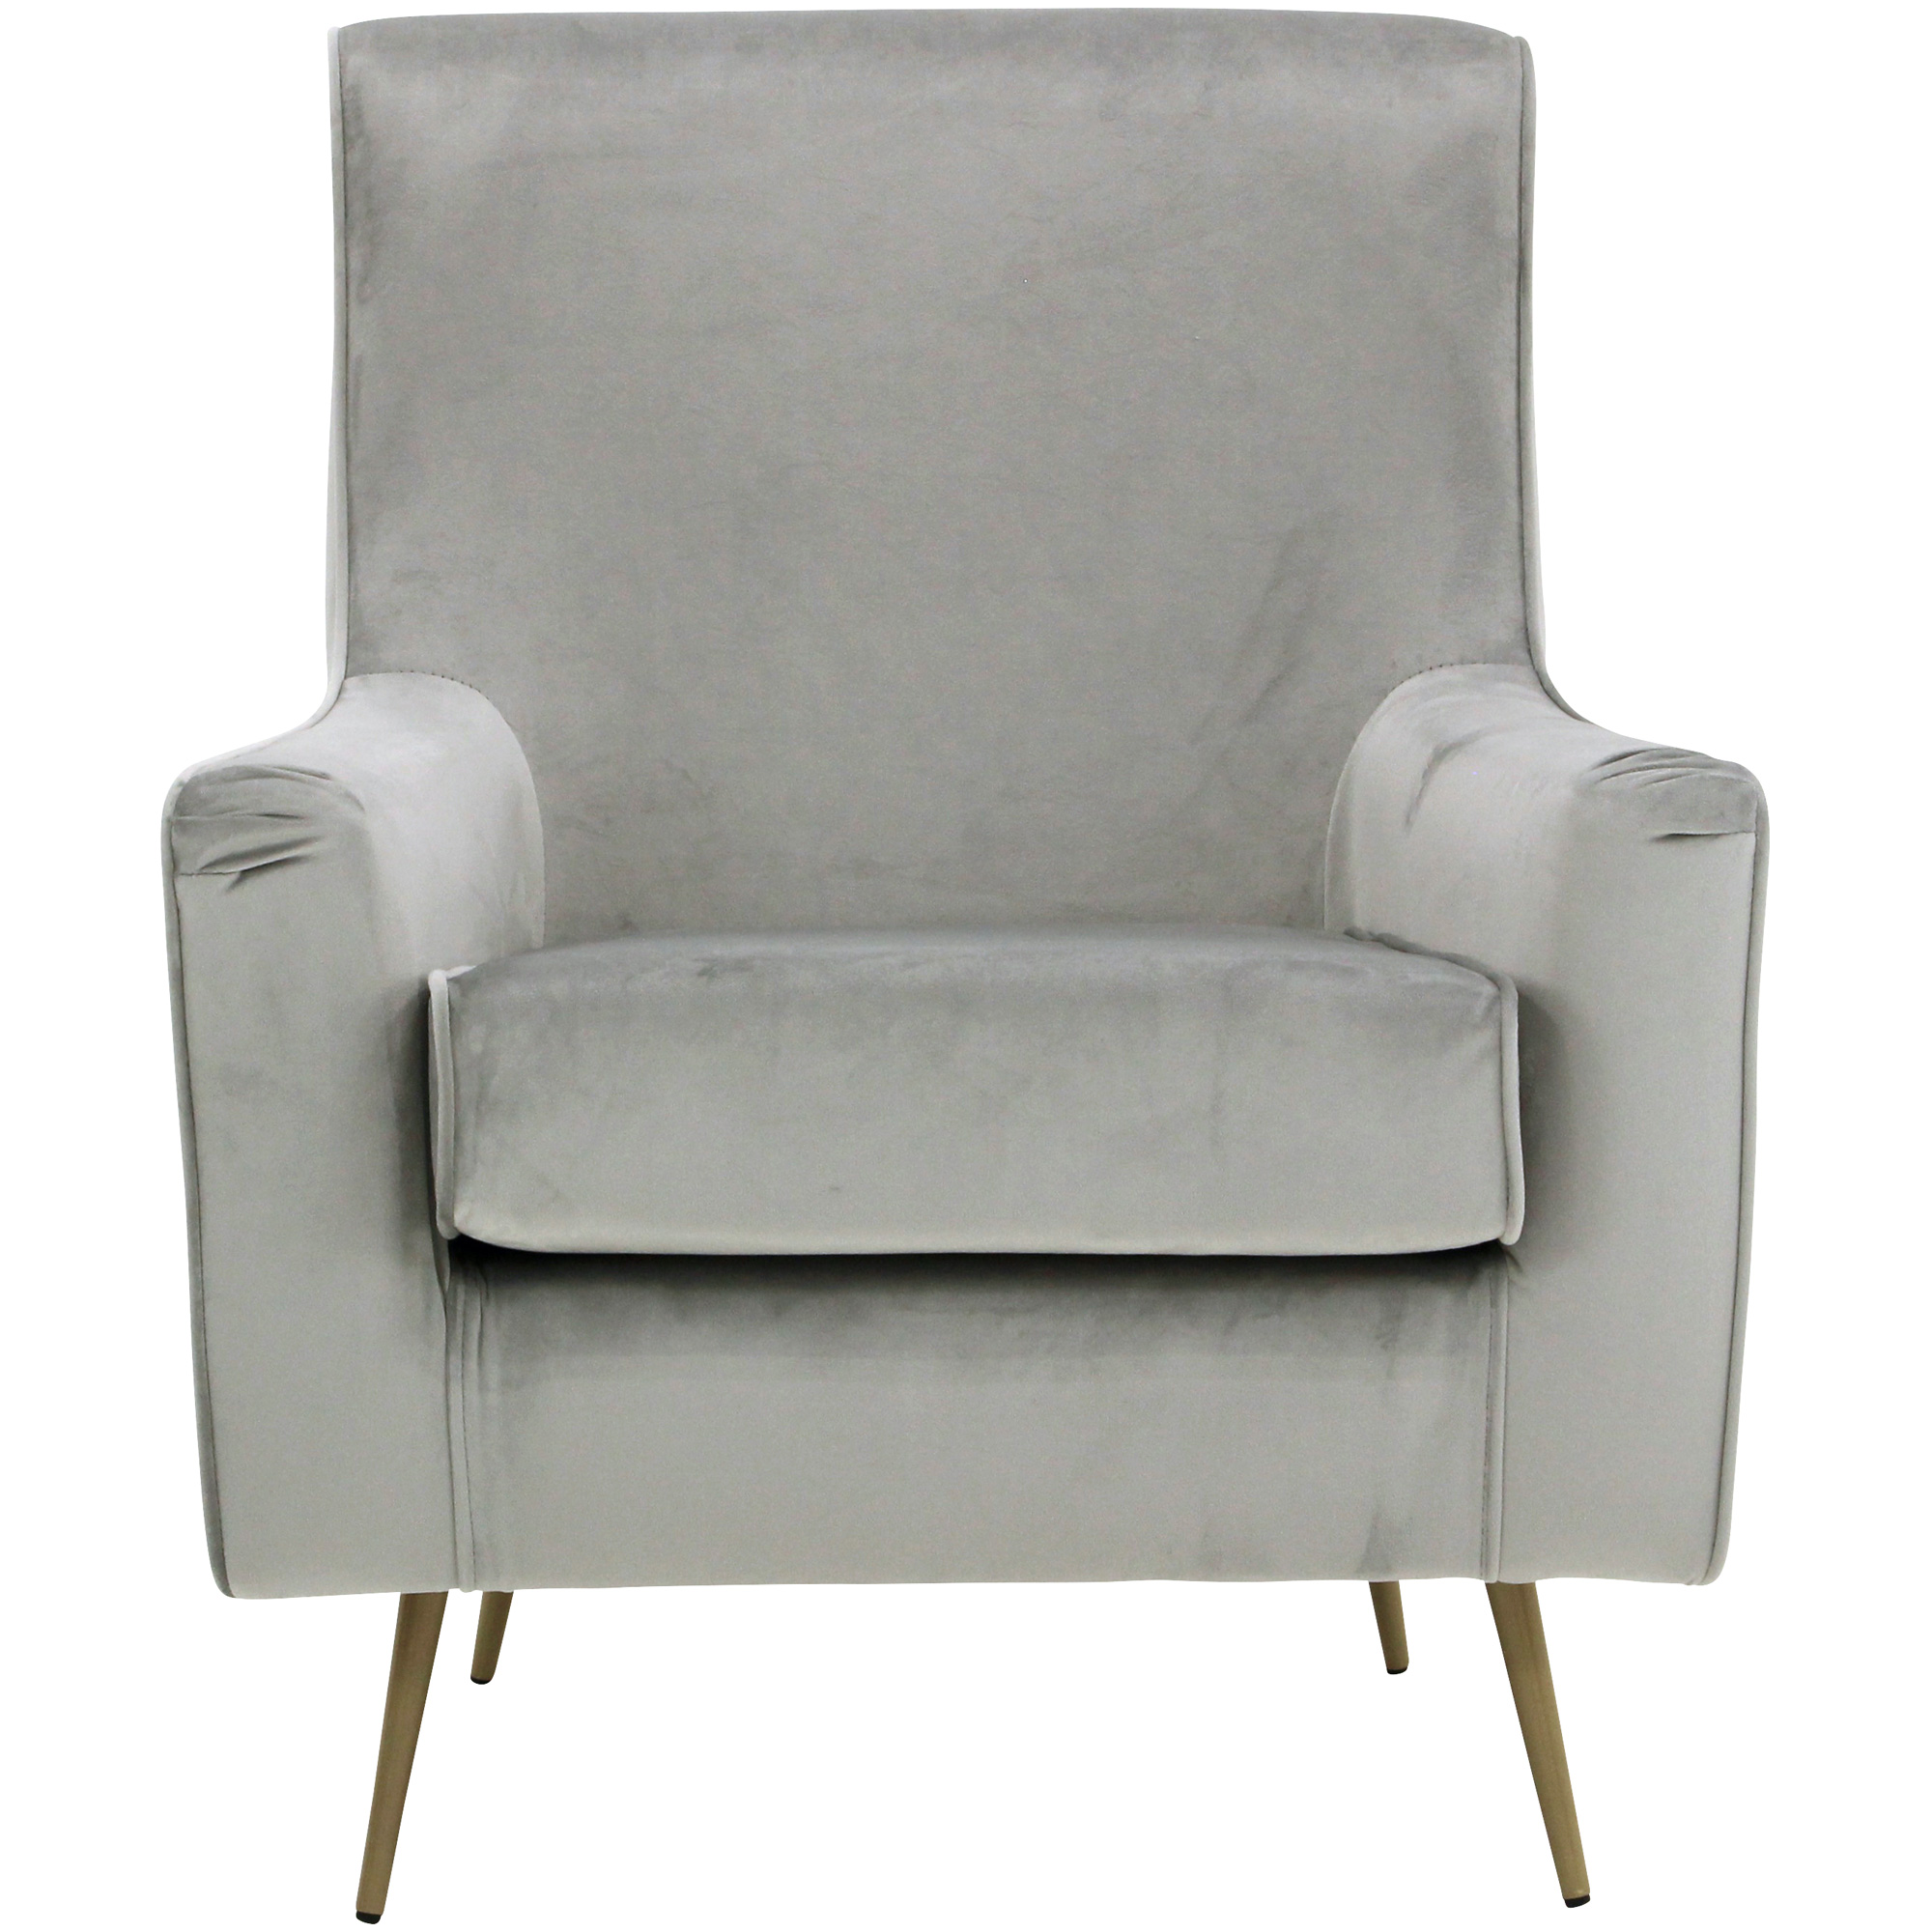 Overman | Lana Pewter Accent Chair